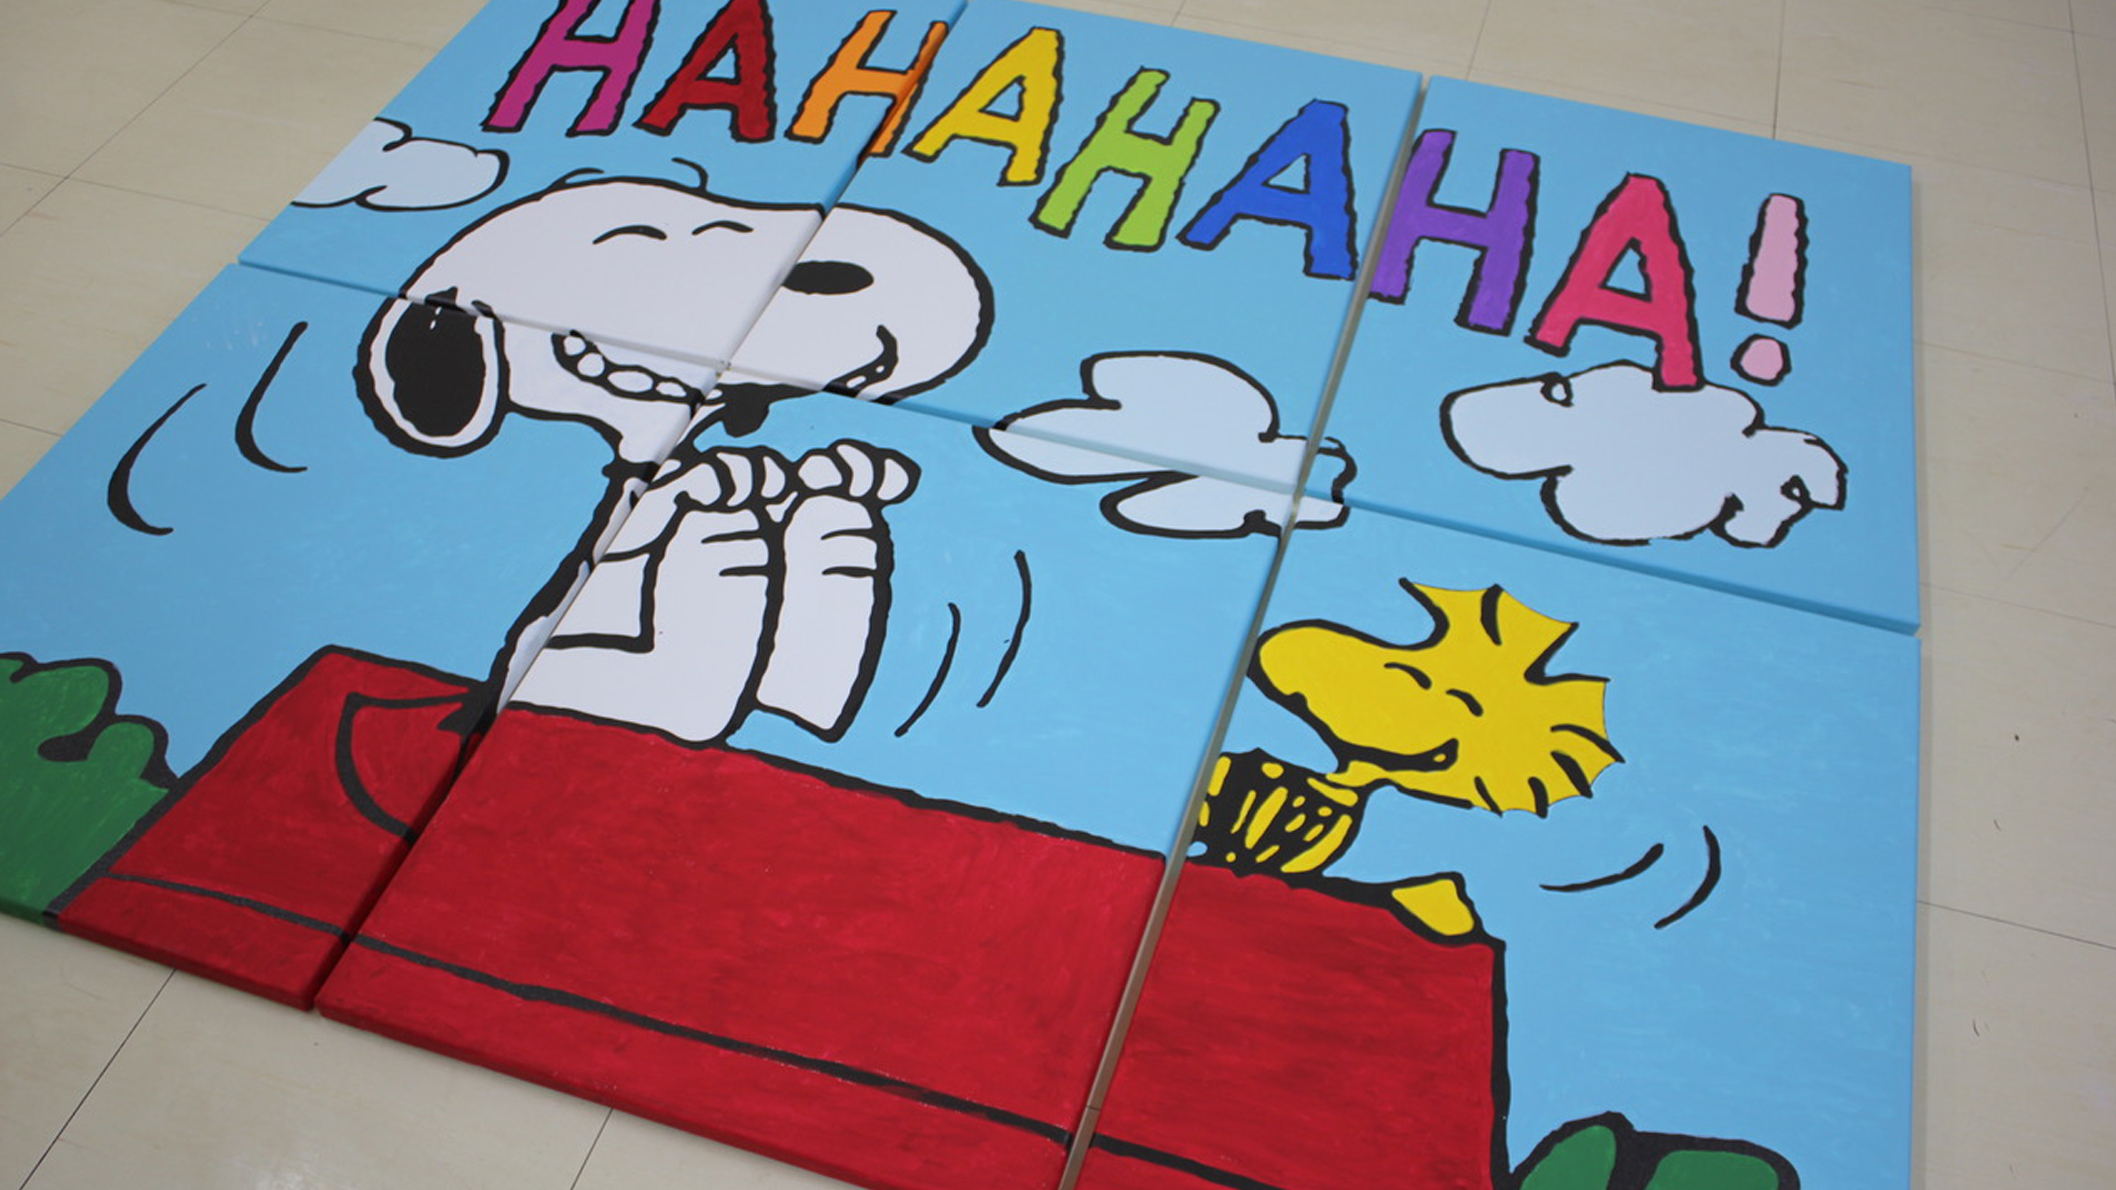 A painted mural of a black and white beagle and yellow bird laughing